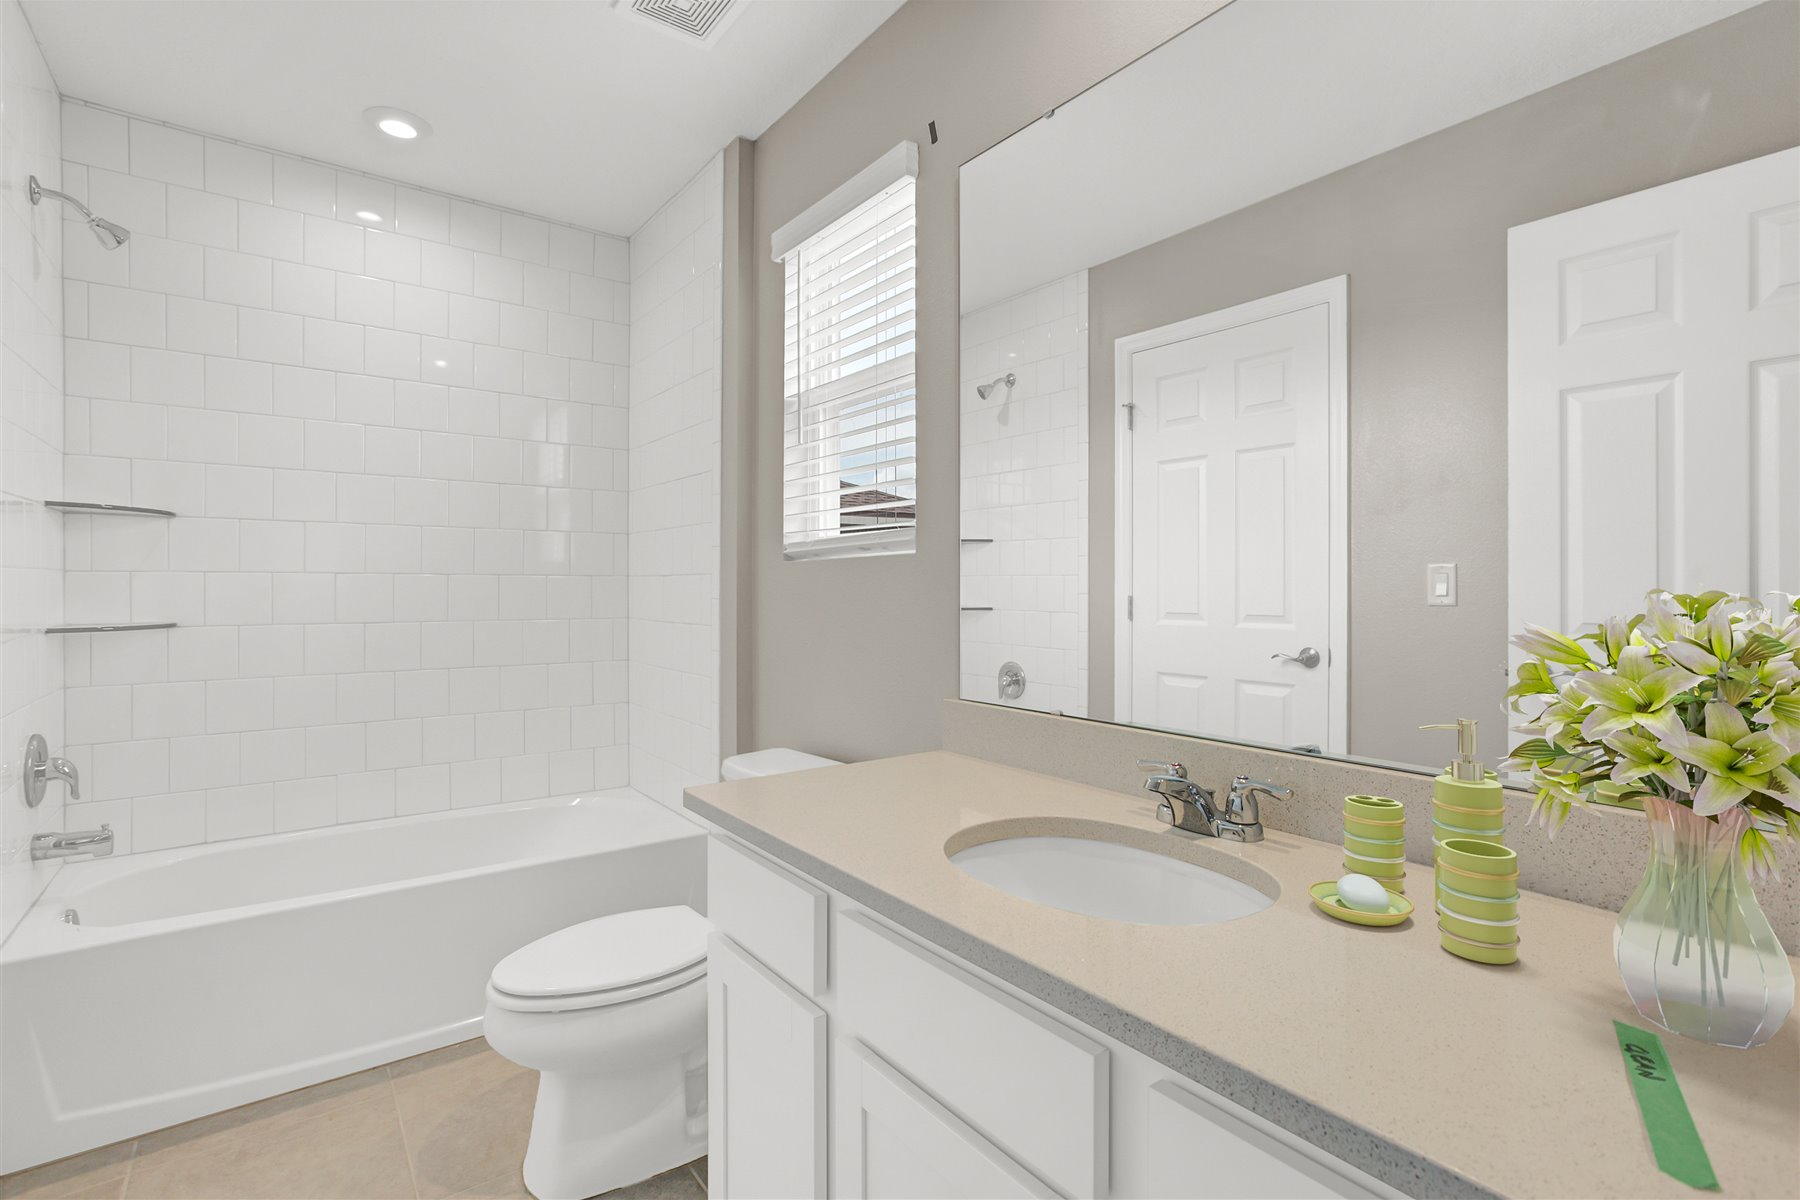 Belmont Plan Bath at Tohoqua in Kissimmee Florida by Mattamy Homes